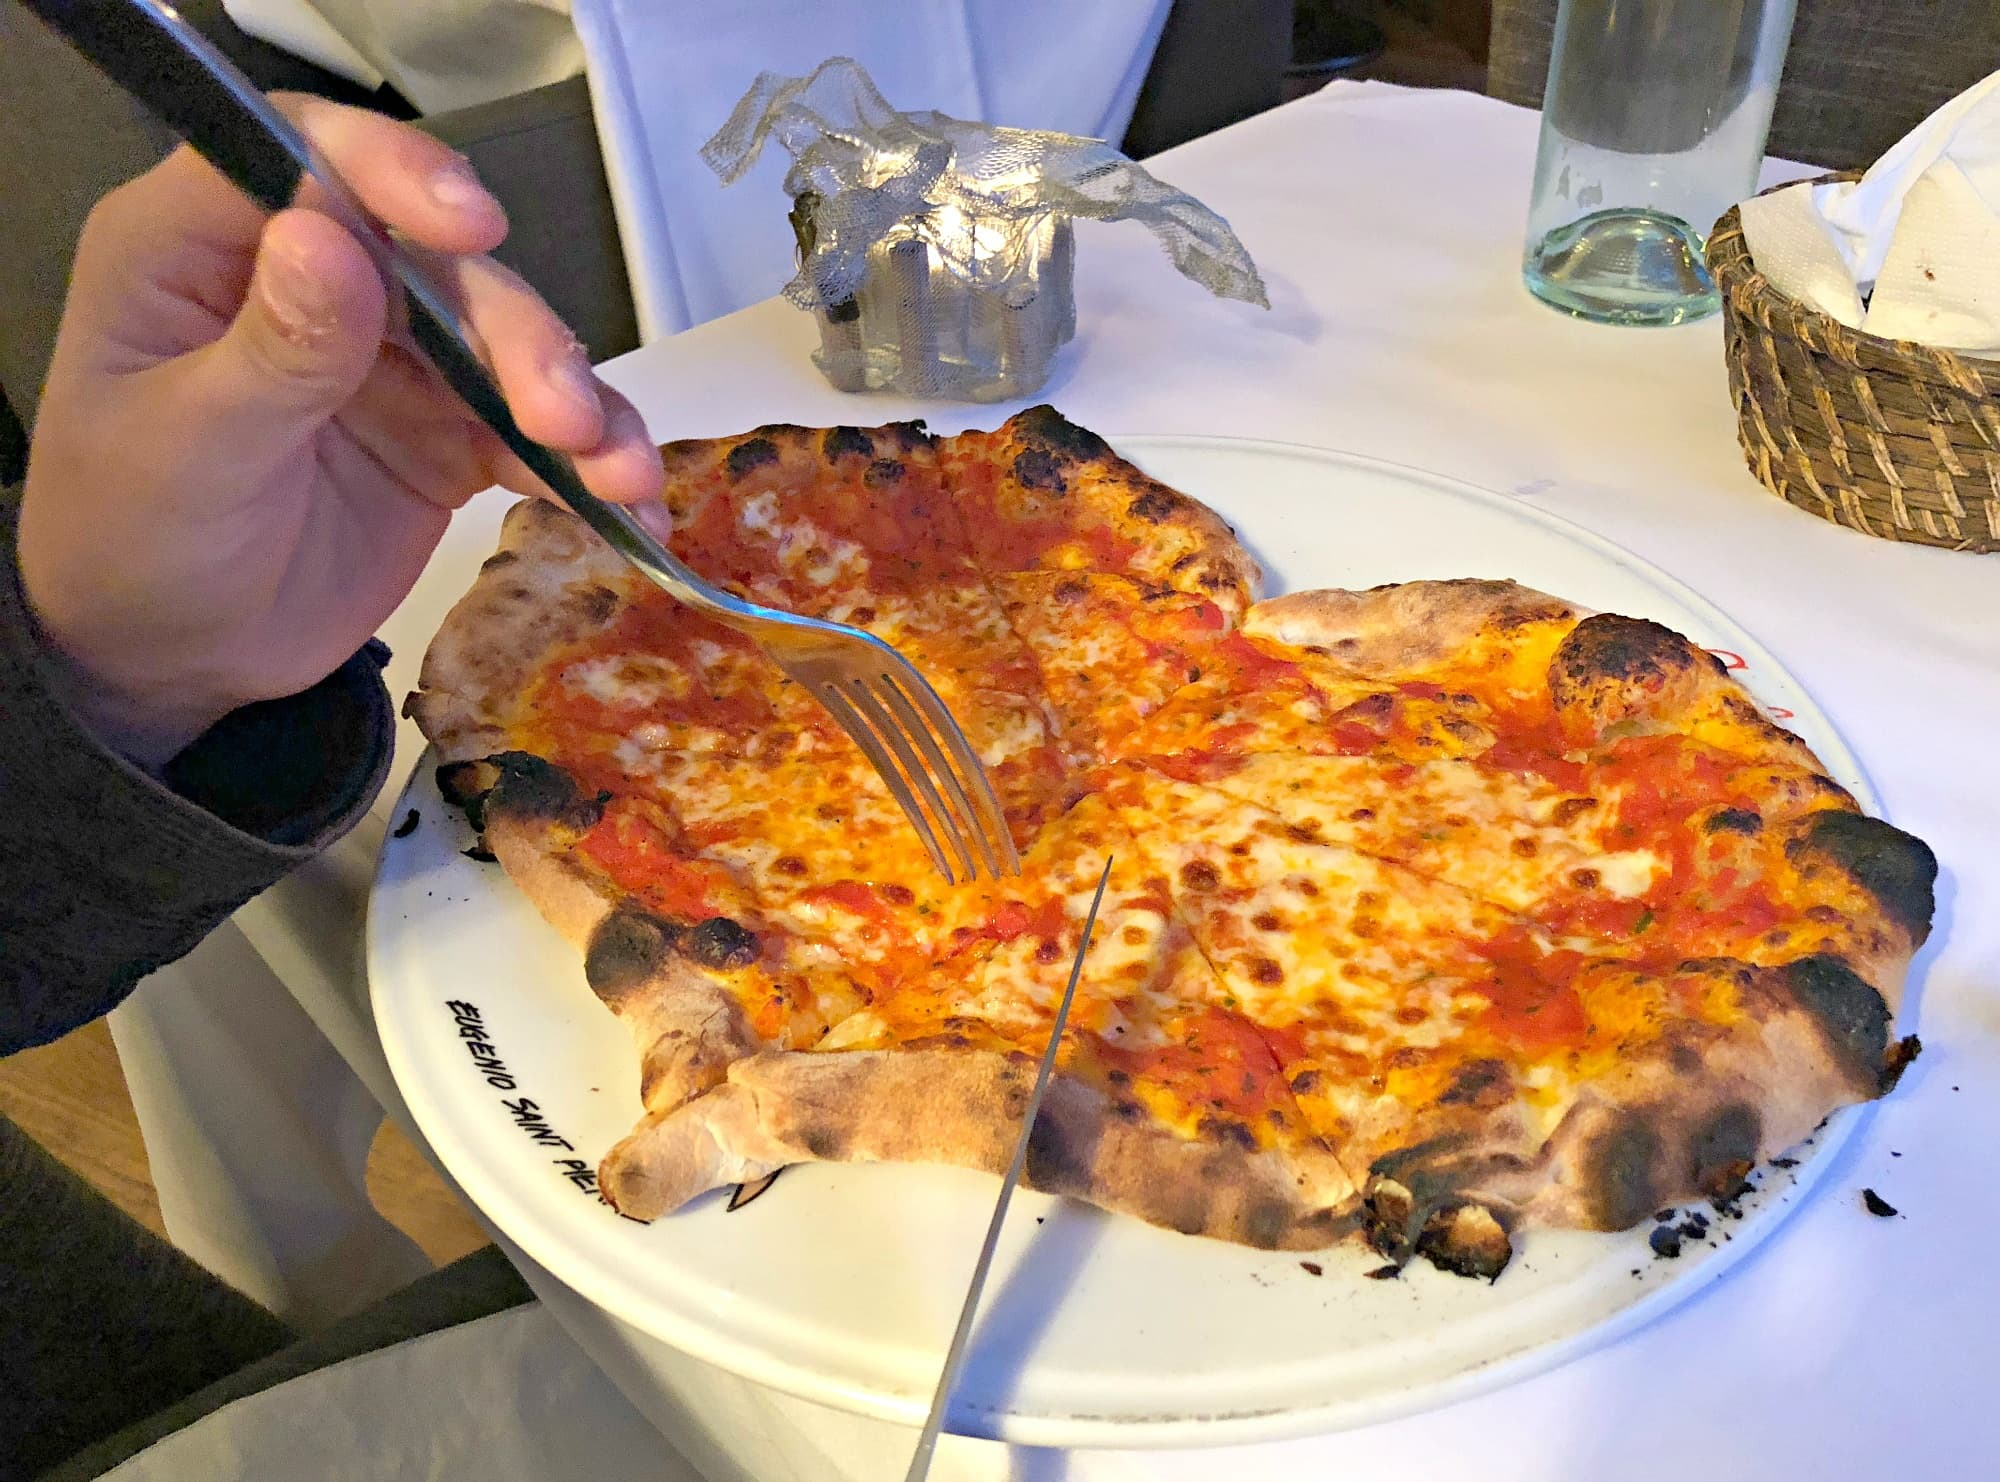 A heart-shaped Parisian pizza